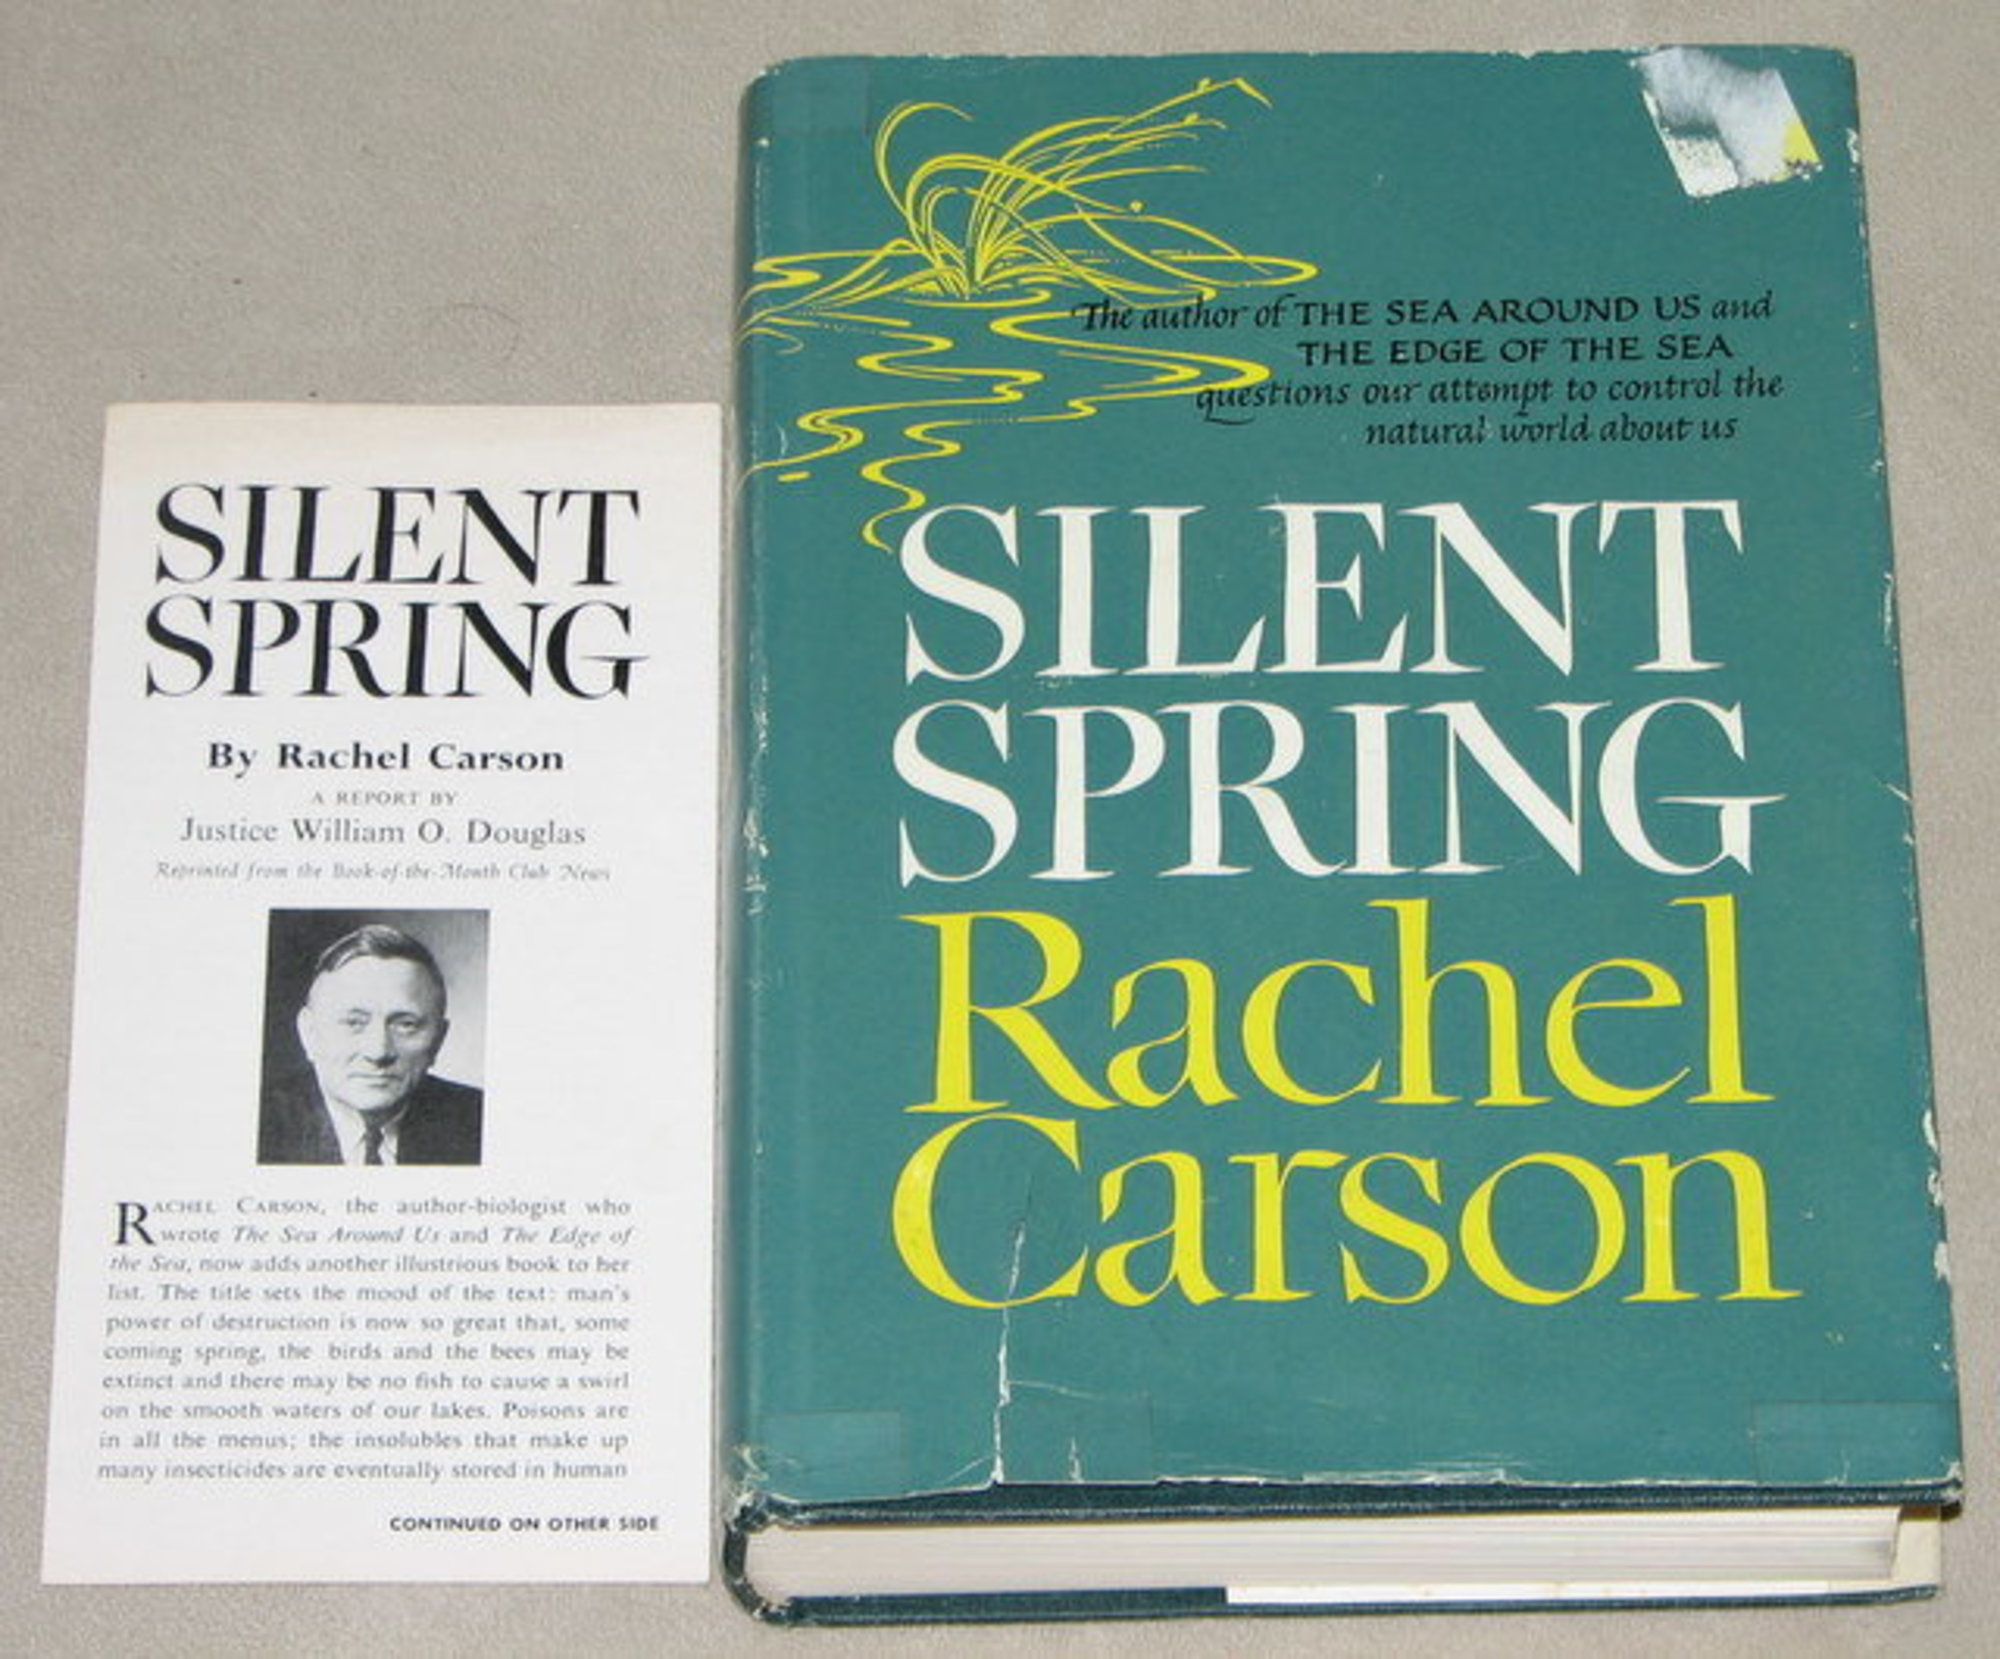 1962 Publication of Silent Spring